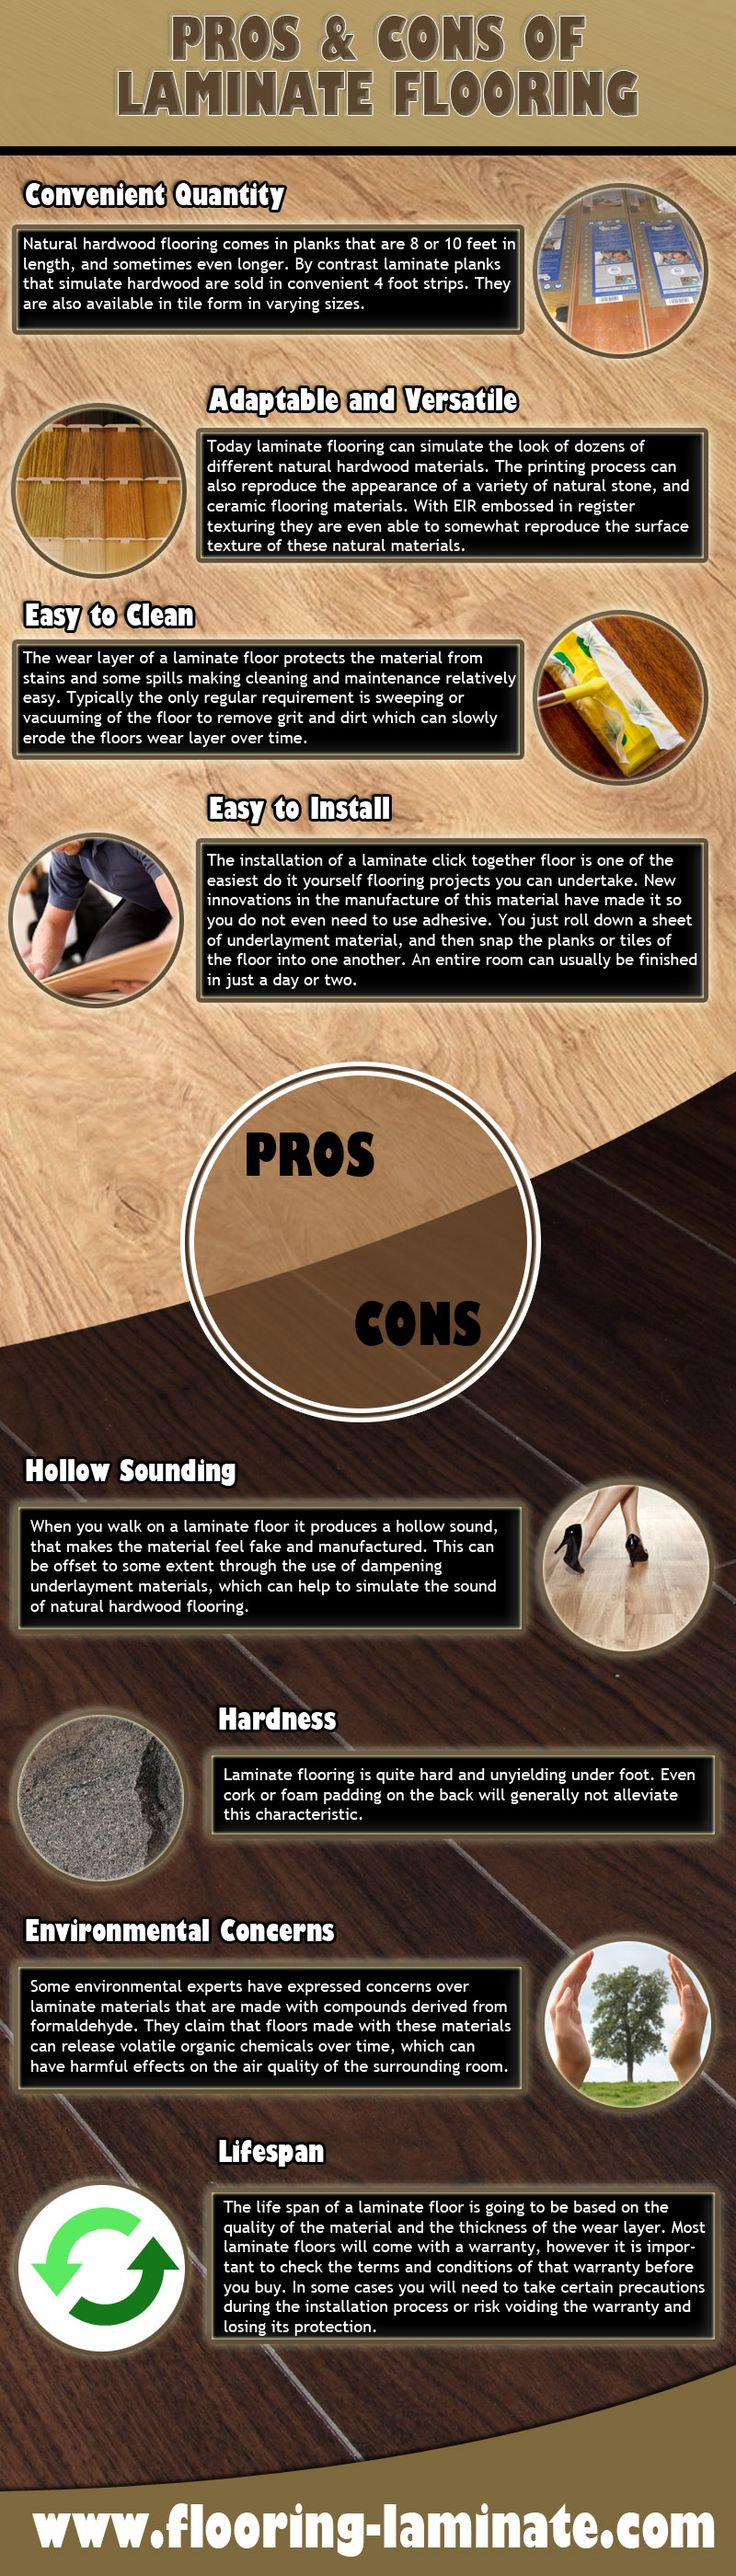 Laminate flooring pros cons